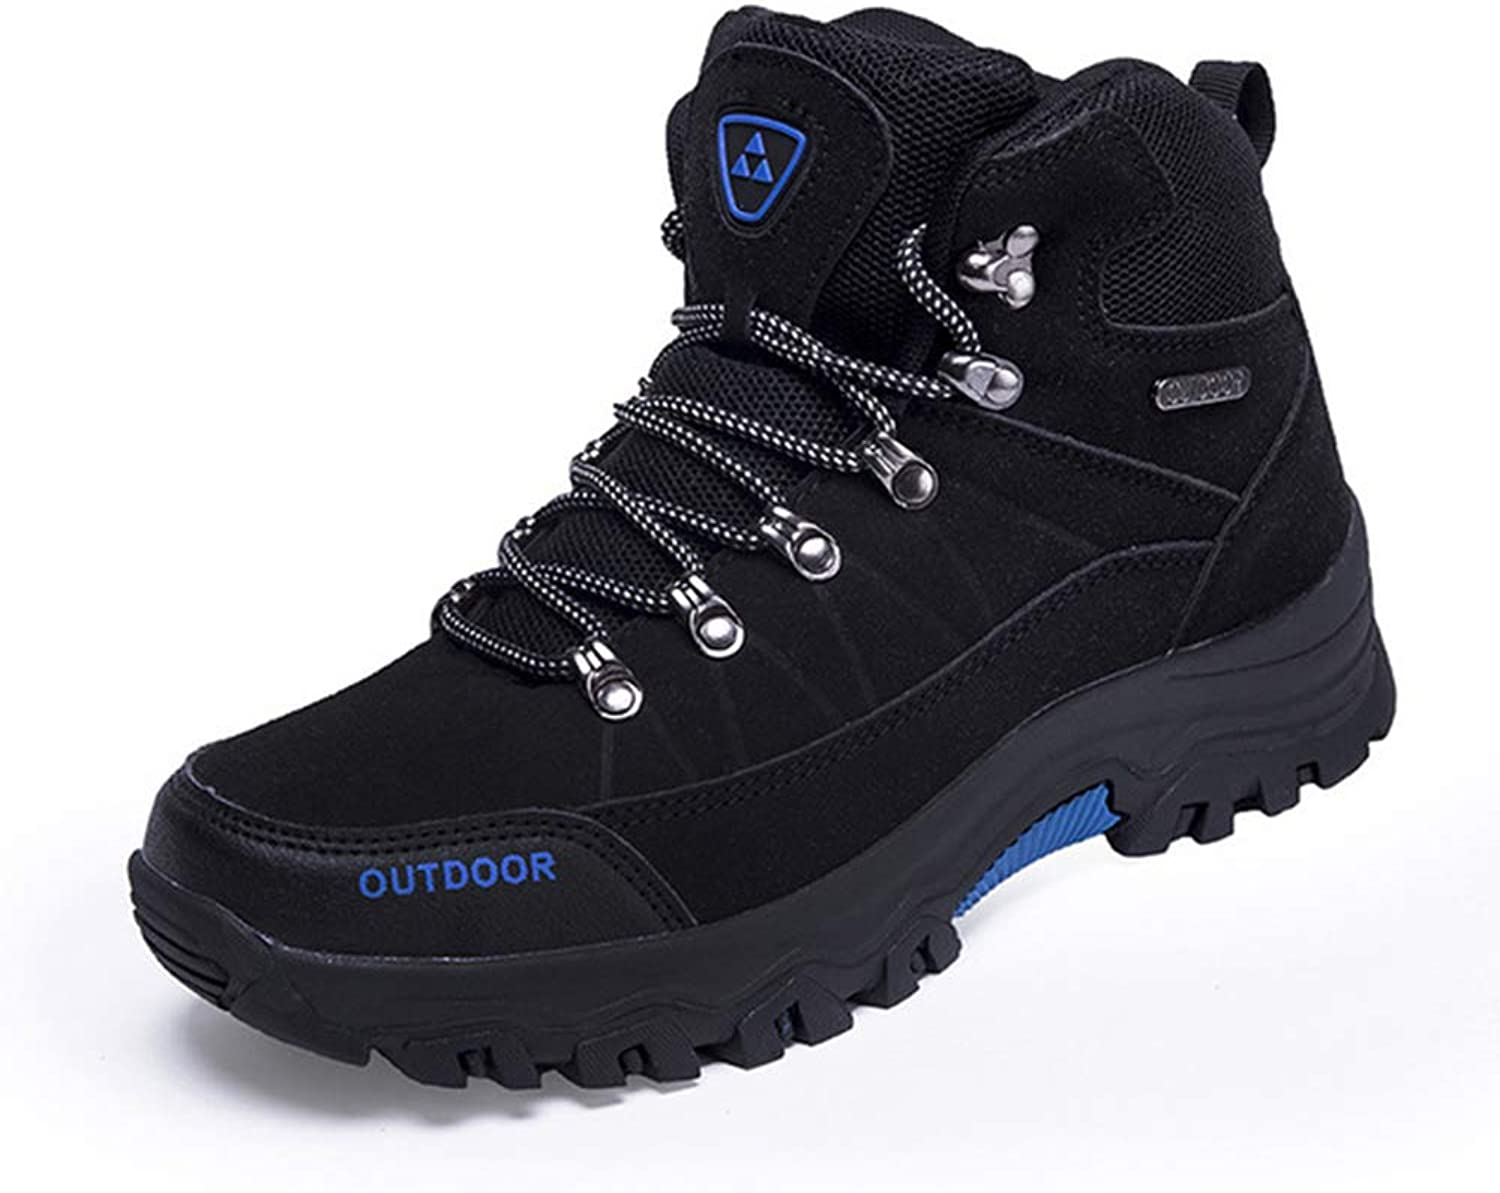 ZXLO Men's Boots Winter Waterproof Leather Work Safety Boots Outdoor Hiking shoes